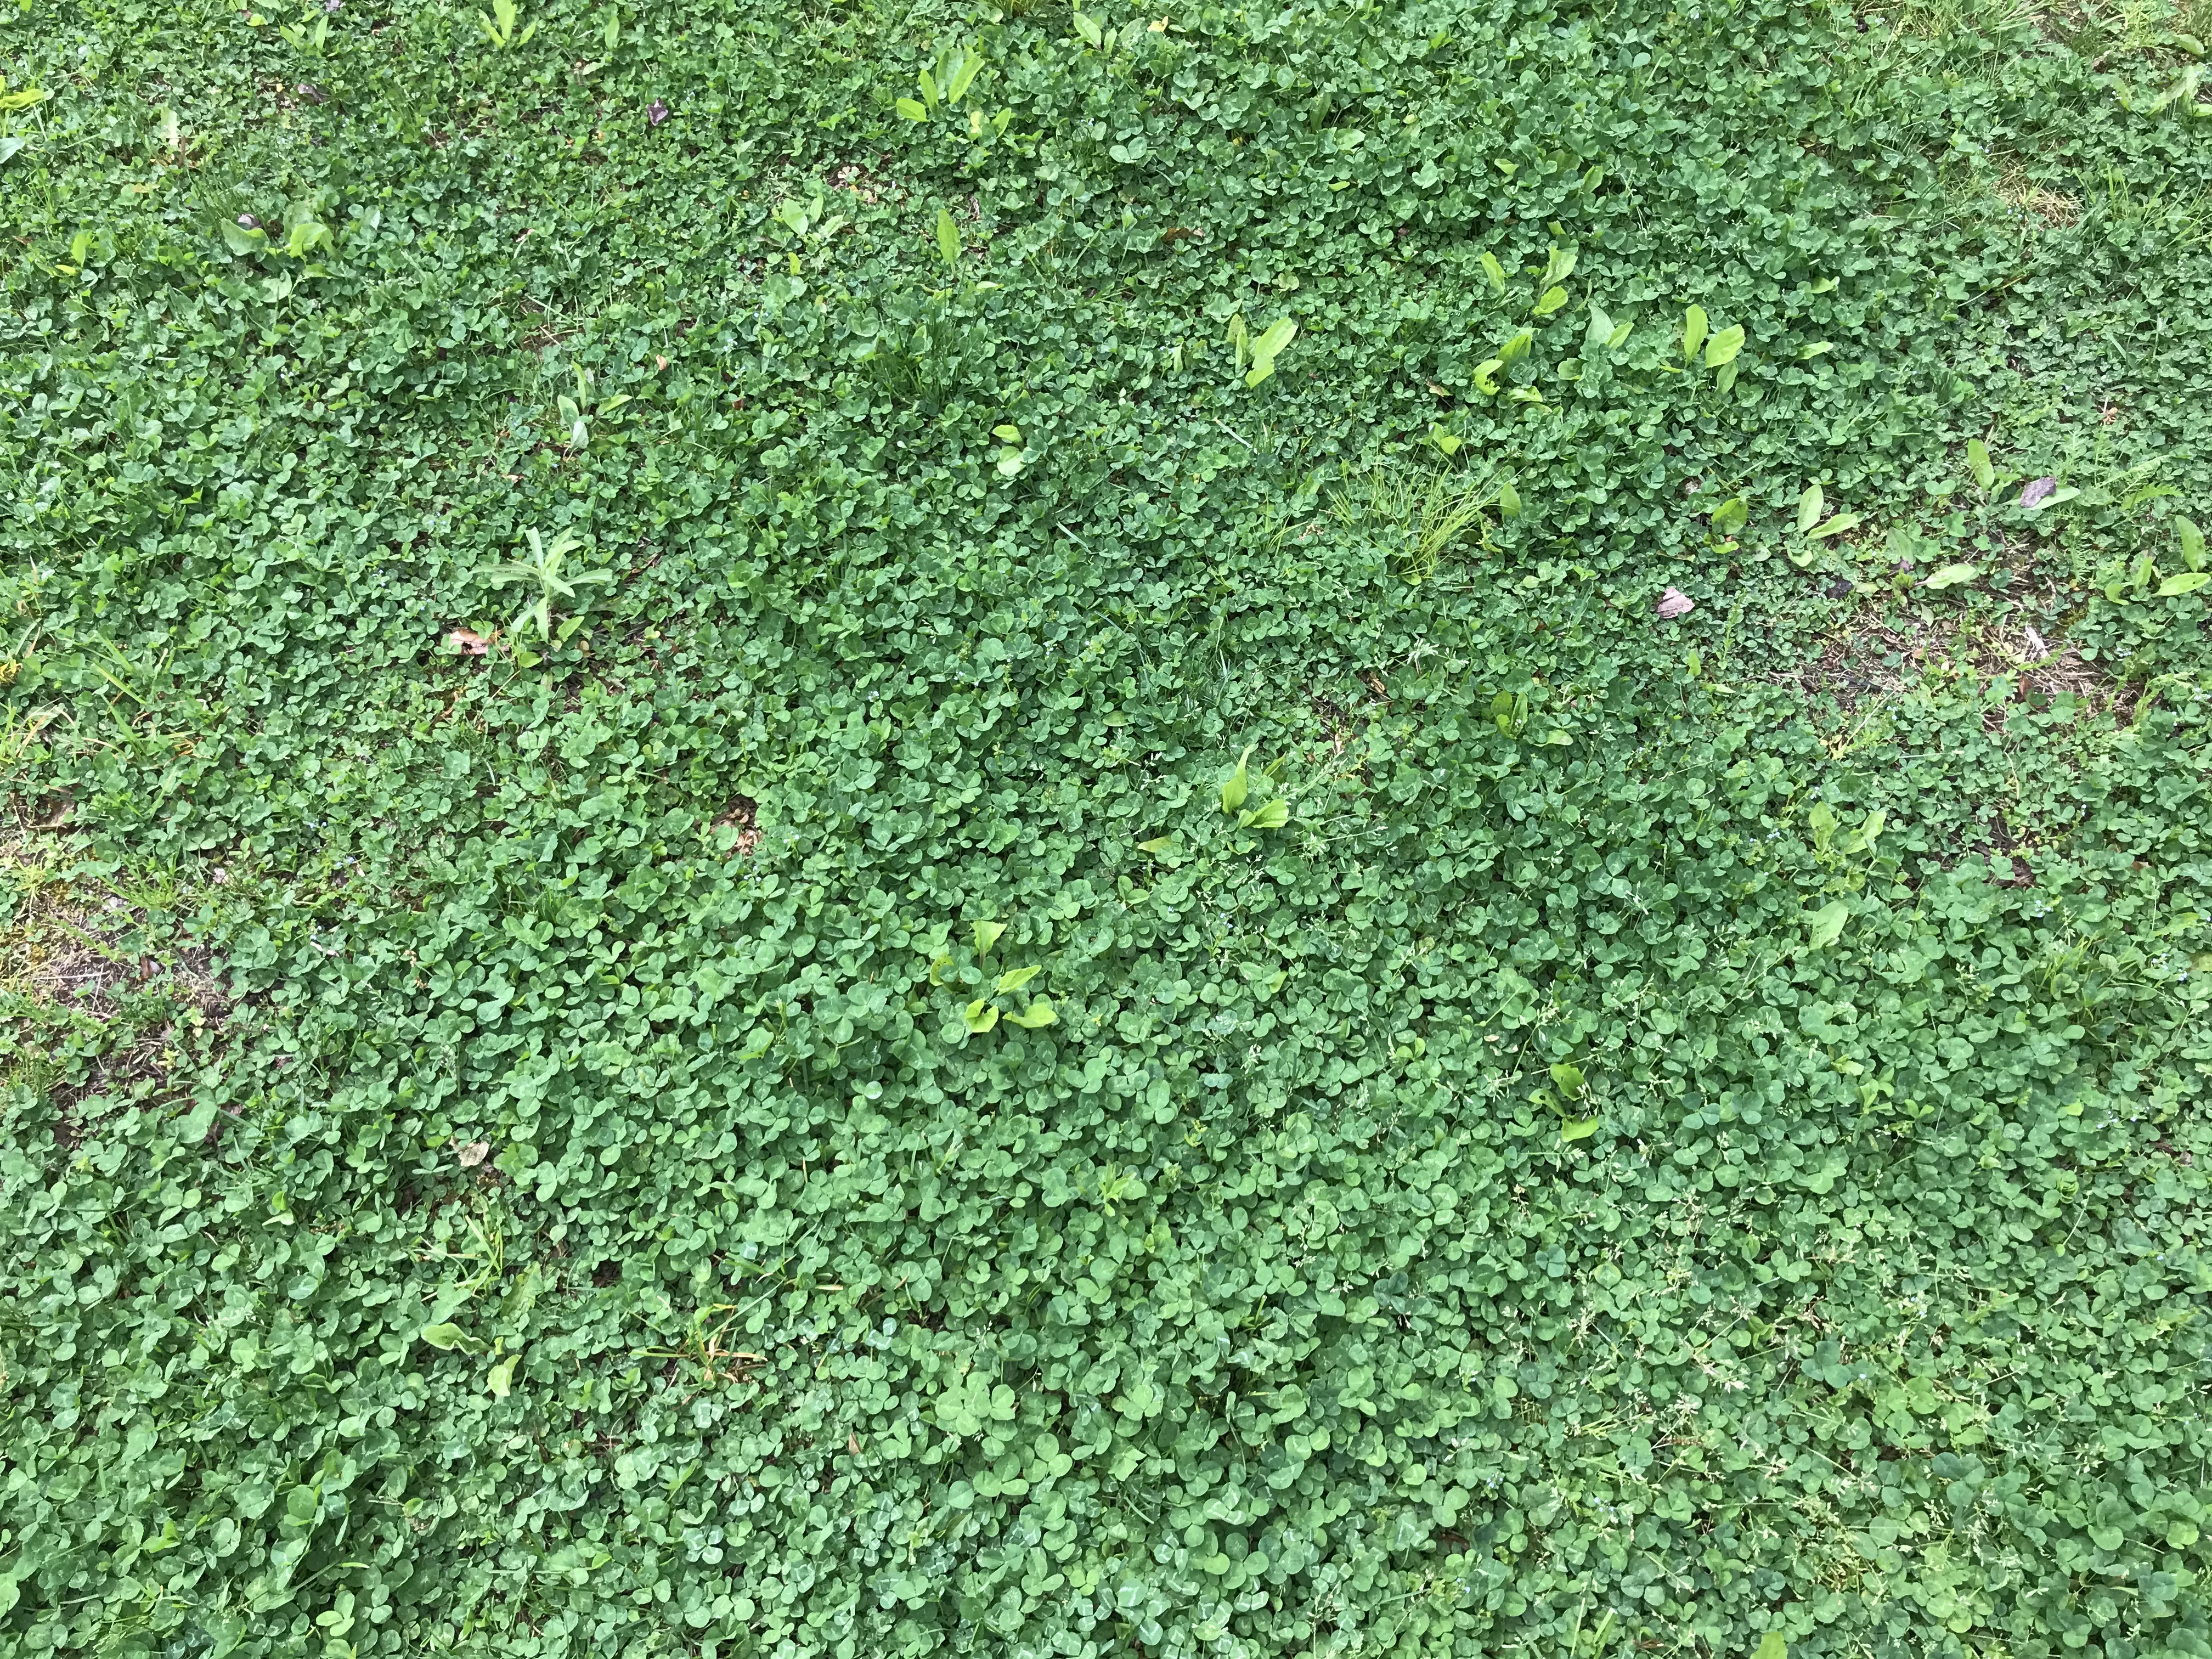 Emmaus, PA before photo of weeds thriving in their lawn